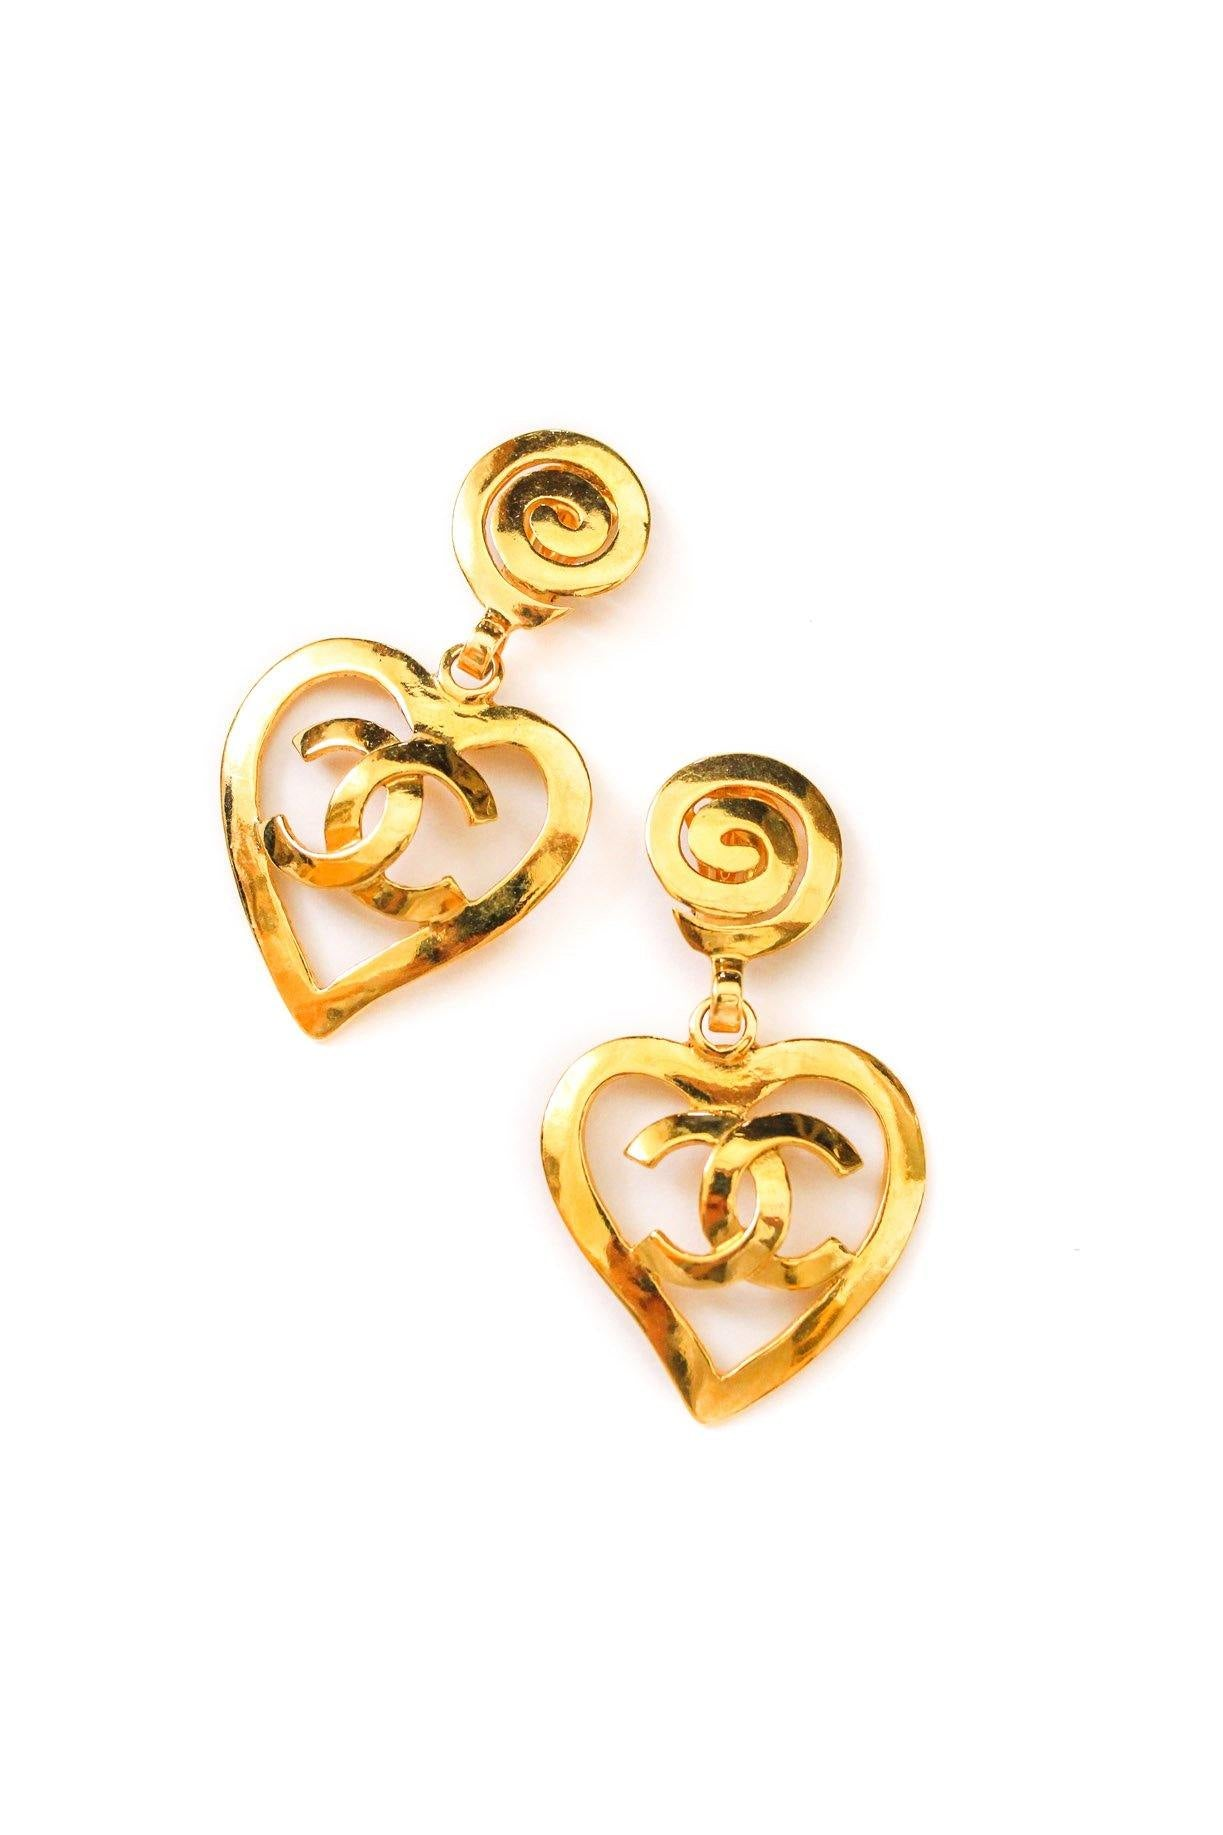 Chanel Statement Hear Clip-on Earrings